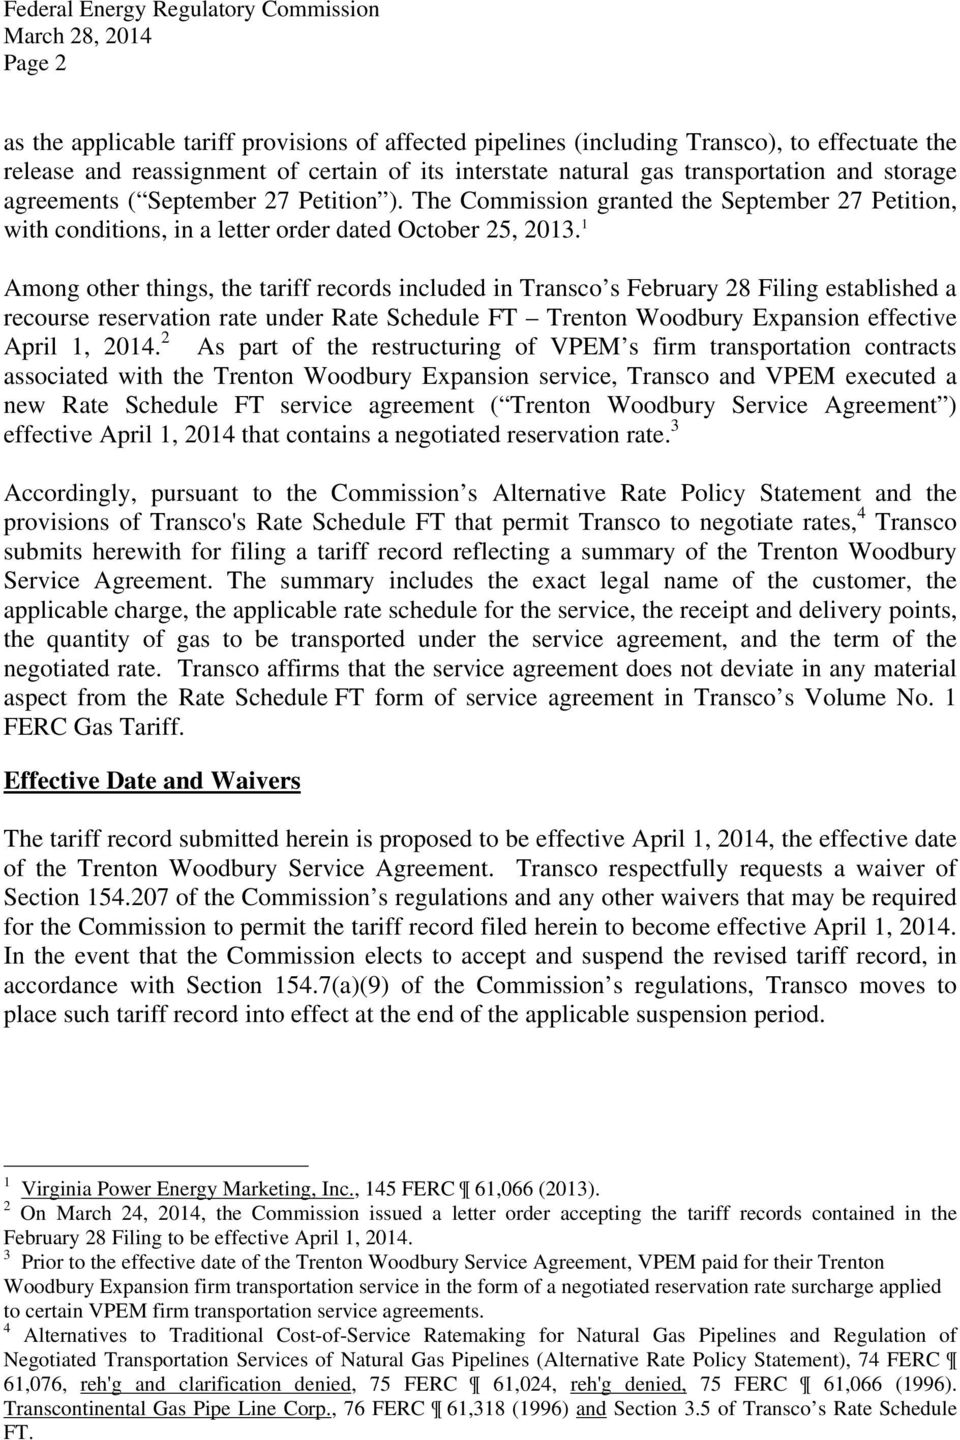 1 Among other things, the tariff records included in Transco s February 28 Filing established a recourse reservation rate under Rate Schedule FT Trenton Woodbury Expansion effective April 1, 2014.